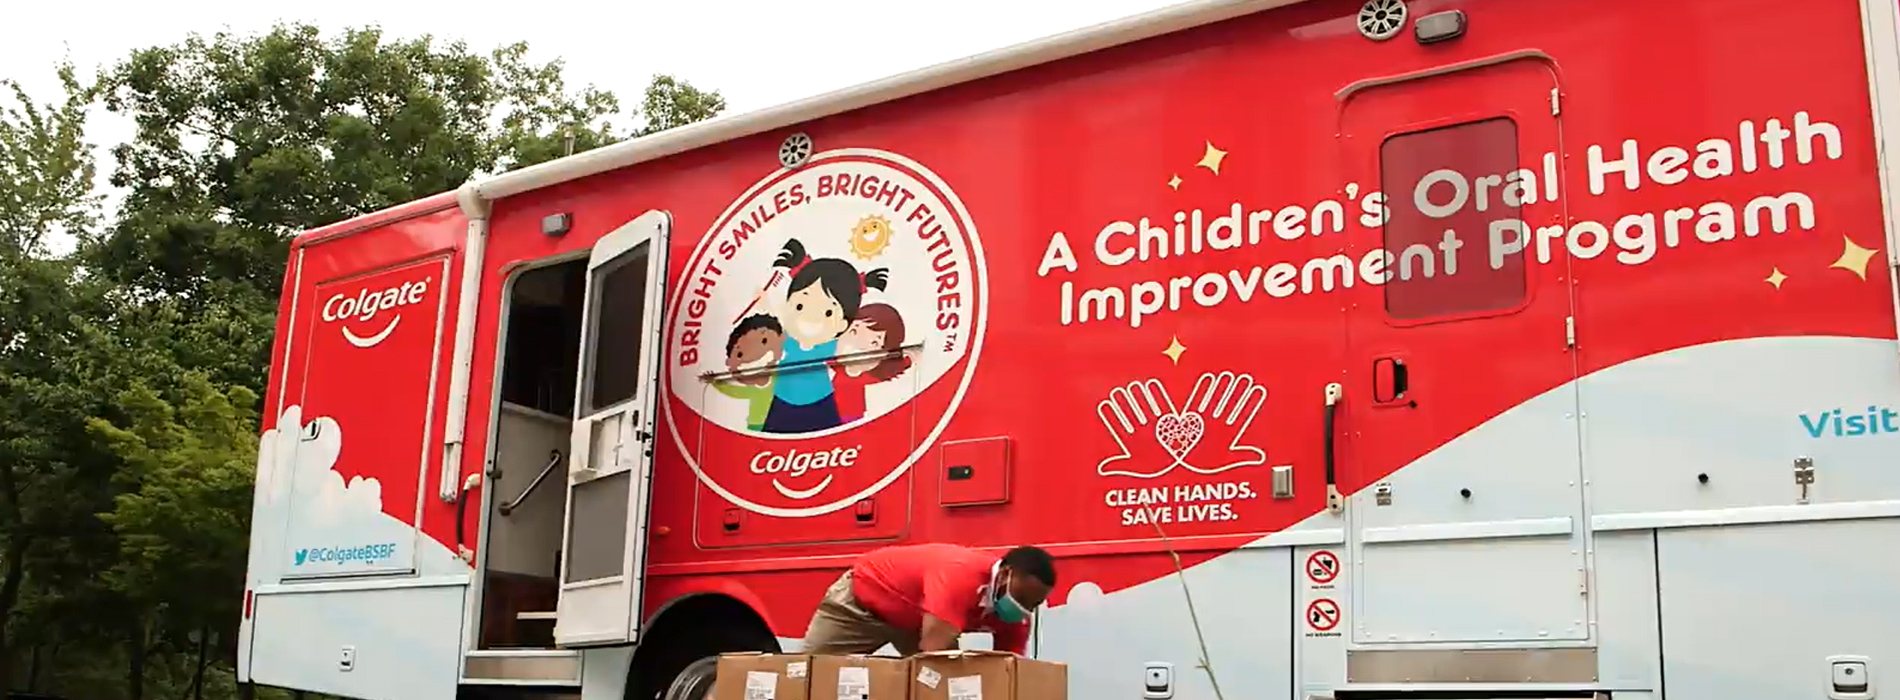 Colgate Bright Smiles, Bright Futures Mobile Dental Vans to Distribute over $3 Million Worth of Health & Hygiene Essentials to Support COVID-19 relief efforts